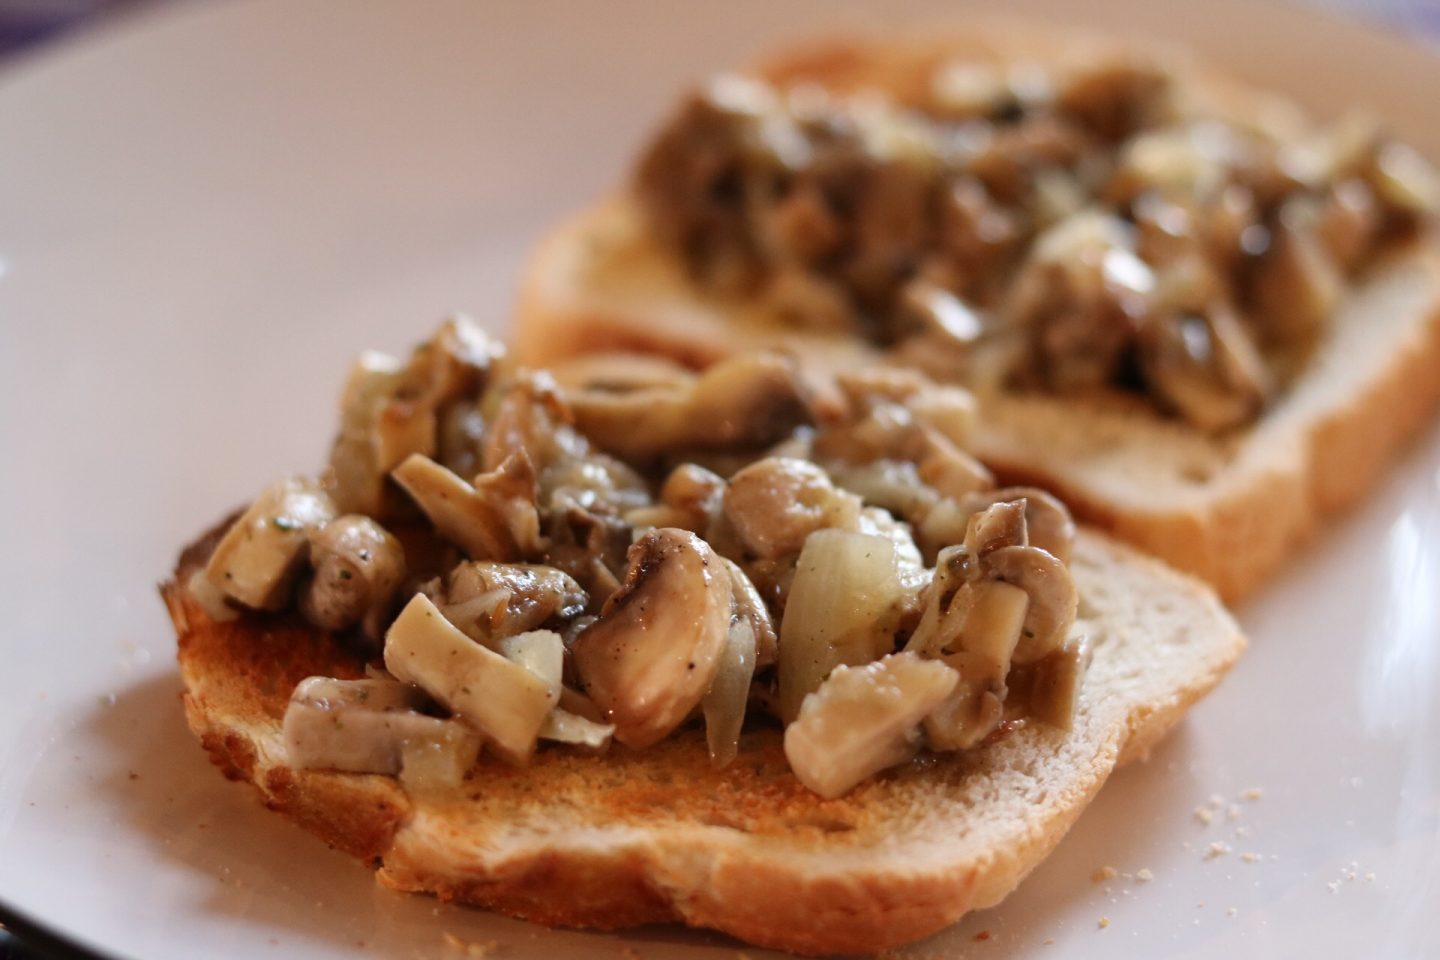 Mushrooms sautéed in Garlic on toast and some tips on relaxing and taking some time off.